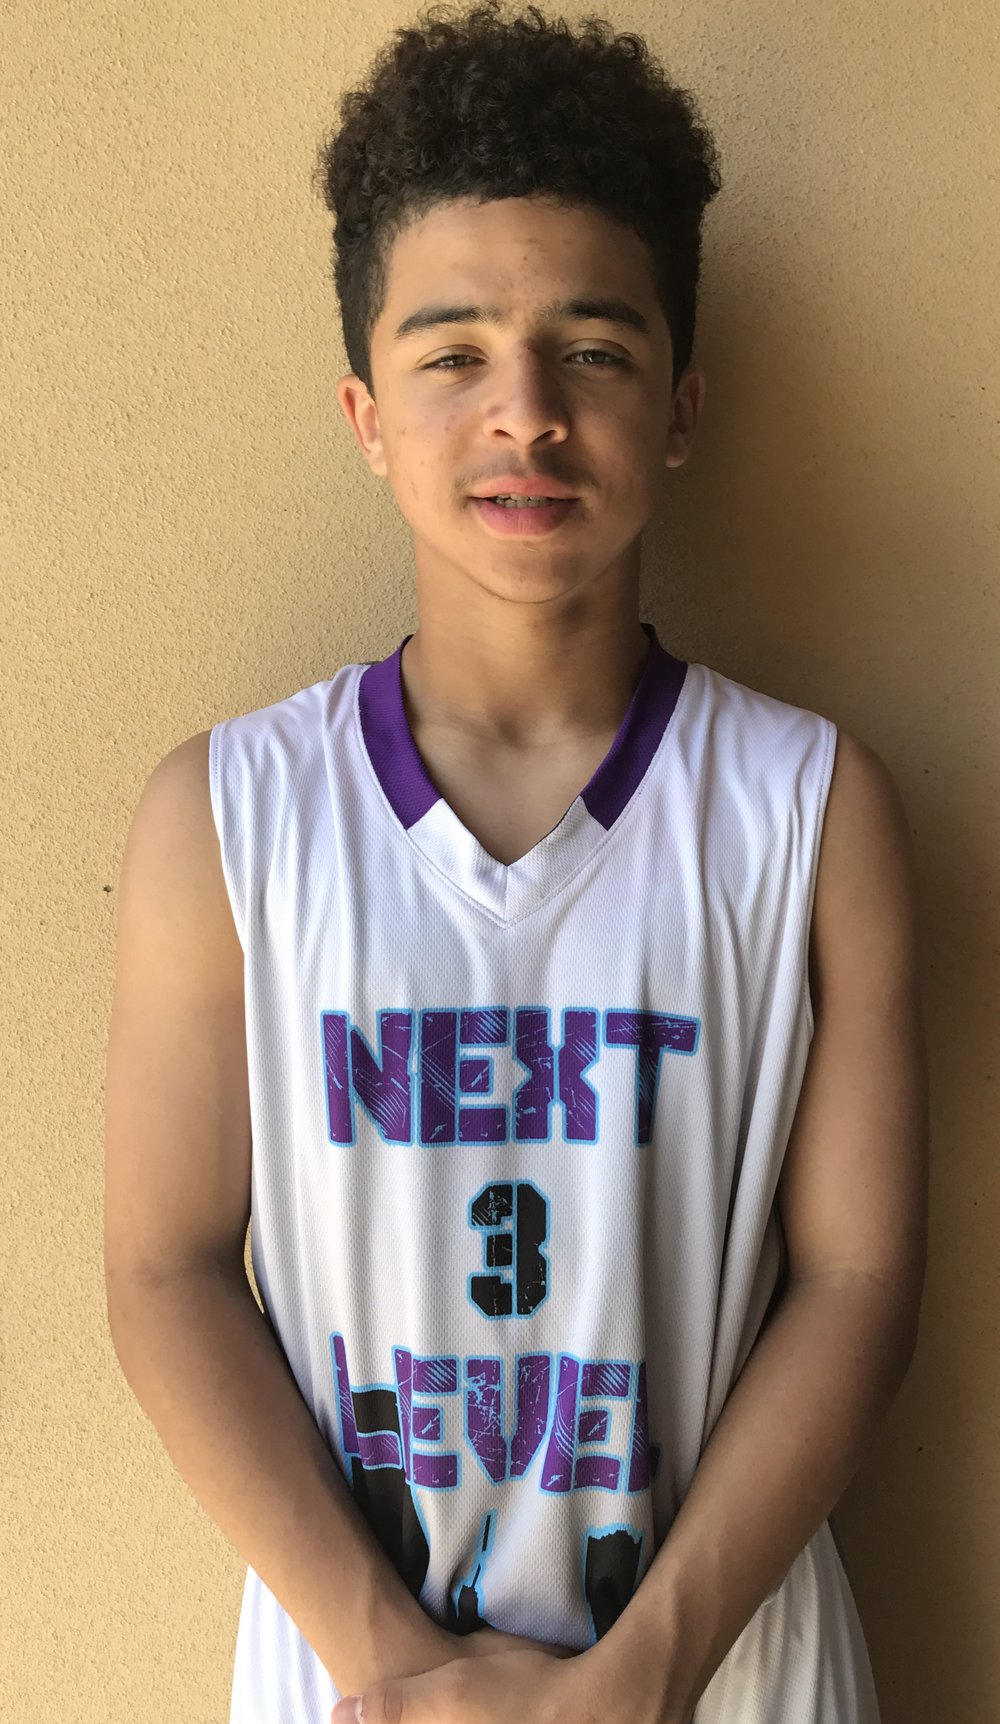 "Jaden Daniel #3    School: Elkins High School    Grade: 9th    Height: 5'9    Weight: 145    Position: Guard    Top 5 Colleges: LSU, Duke, Kentucky, UT, UNC                          Normal   0           false   false   false     EN-US   X-NONE   X-NONE                                                                                                                                                                                                                                                                                                                                                                                                                                                                                                                                                                                                                                                                                                                                                                                                                                                                 /* Style Definitions */  table.MsoNormalTable 	{mso-style-name:""Table Normal""; 	mso-tstyle-rowband-size:0; 	mso-tstyle-colband-size:0; 	mso-style-noshow:yes; 	mso-style-priority:99; 	mso-style-parent:""""; 	mso-padding-alt:0in 5.4pt 0in 5.4pt; 	mso-para-margin:0in; 	mso-para-margin-bottom:.0001pt; 	mso-pagination:widow-orphan; 	font-size:12.0pt; 	font-family:""Calibri"",sans-serif; 	mso-ascii-font-family:Calibri; 	mso-ascii-theme-font:minor-latin; 	mso-hansi-font-family:Calibri; 	mso-hansi-theme-font:minor-latin; 	mso-bidi-font-family:""Times New Roman""; 	mso-bidi-theme-font:minor-bidi;}"